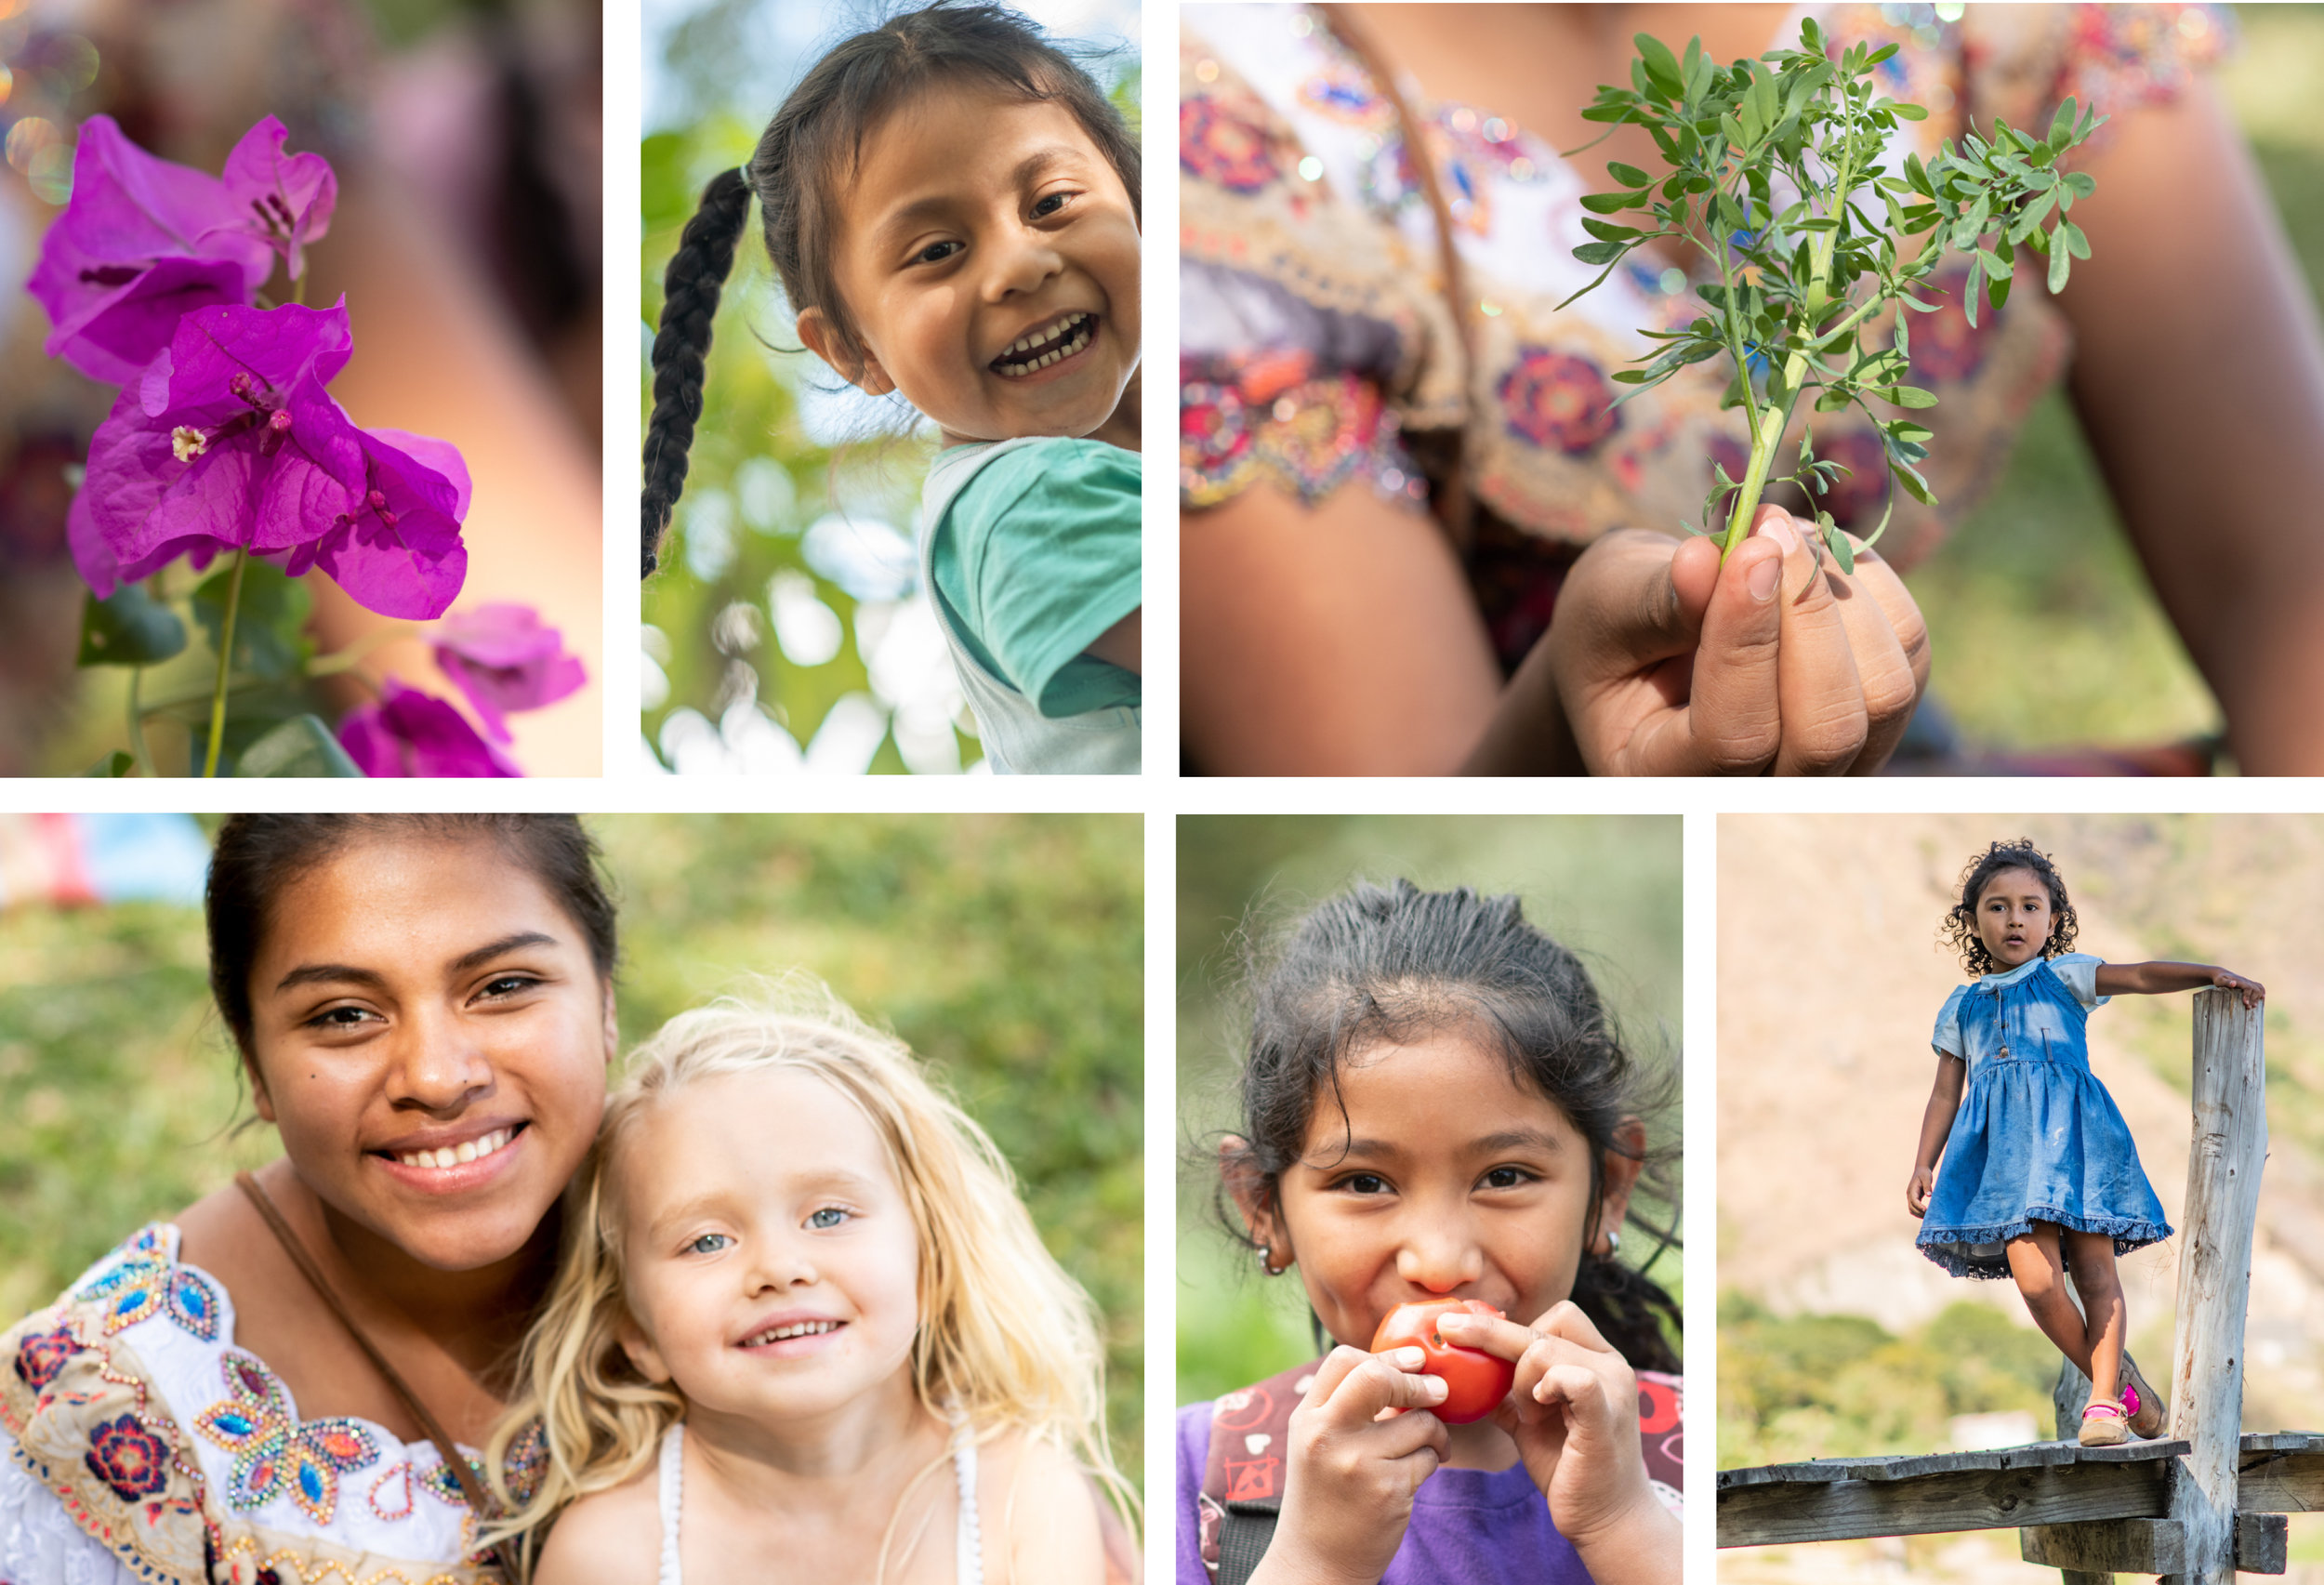 This series documents the Guatemala children, landscape, and the nature-based educational camp that was hosted by Rising Minds 501(c)3 and Forest playgroup in San Juan, Guatemala.